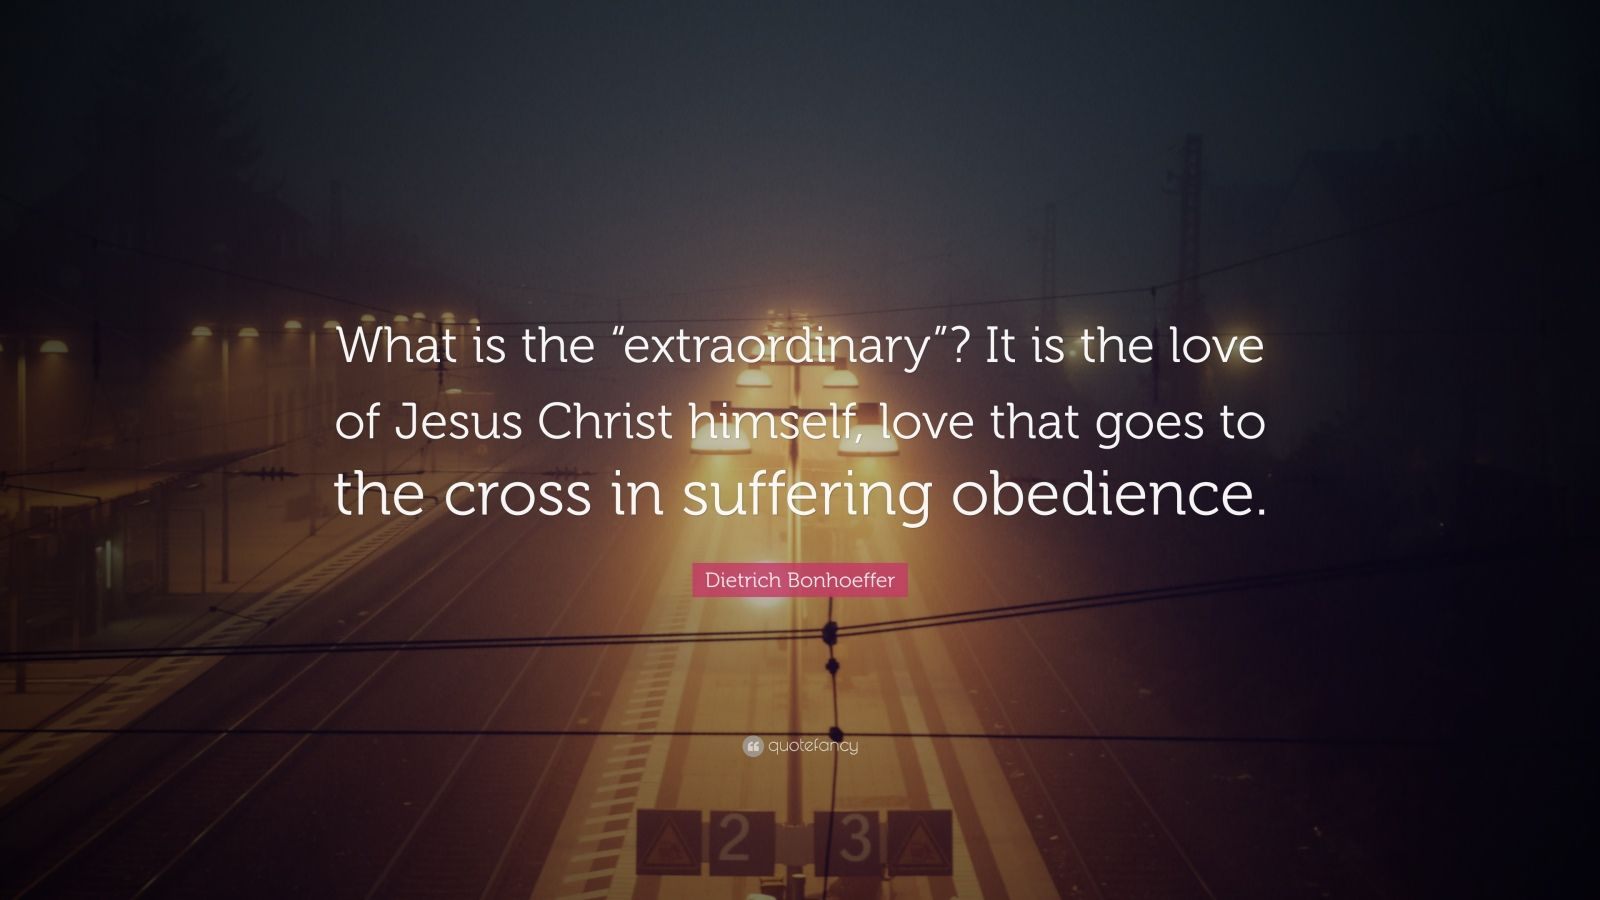 """Dietrich Bonhoeffer Quote: """"What is the """"extraordinary""""? It is the love of Jesus Christ himself, love that goes to the cross in suffering obedience."""""""